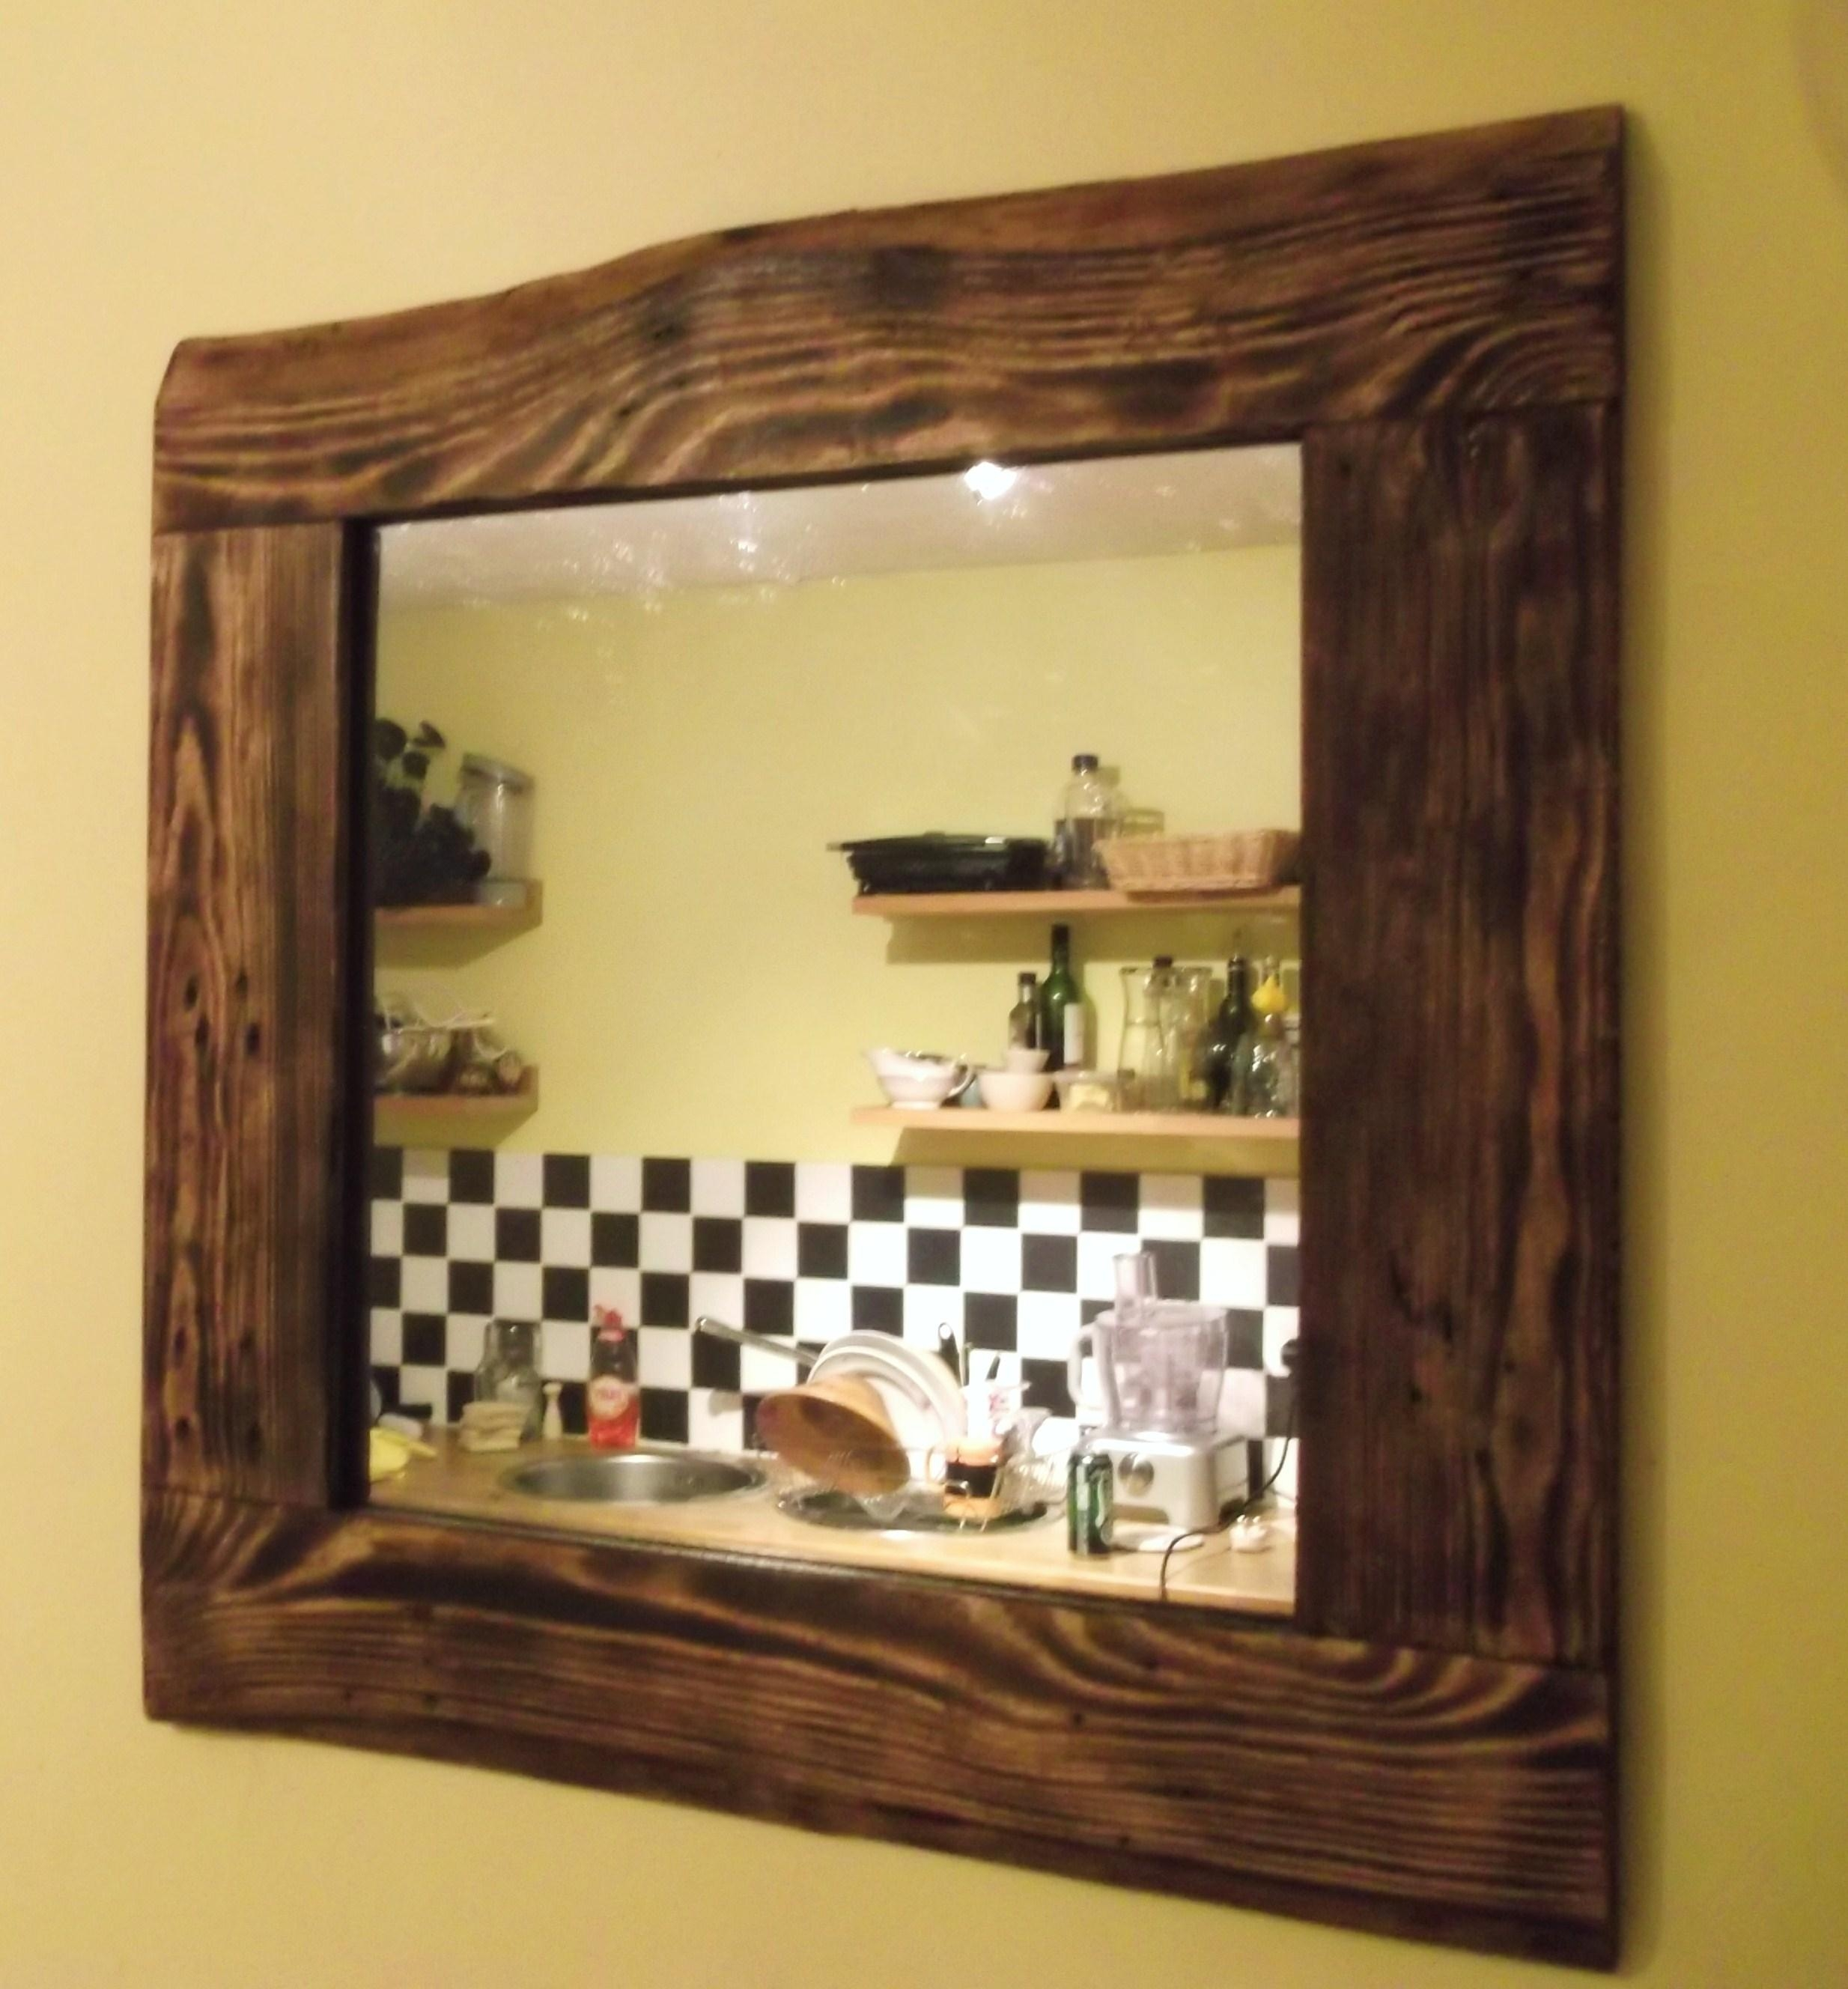 Reclaimed Wood Mirrors | Dave's Beach Hut Regarding Natural Wood Framed Mirrors (Image 13 of 20)